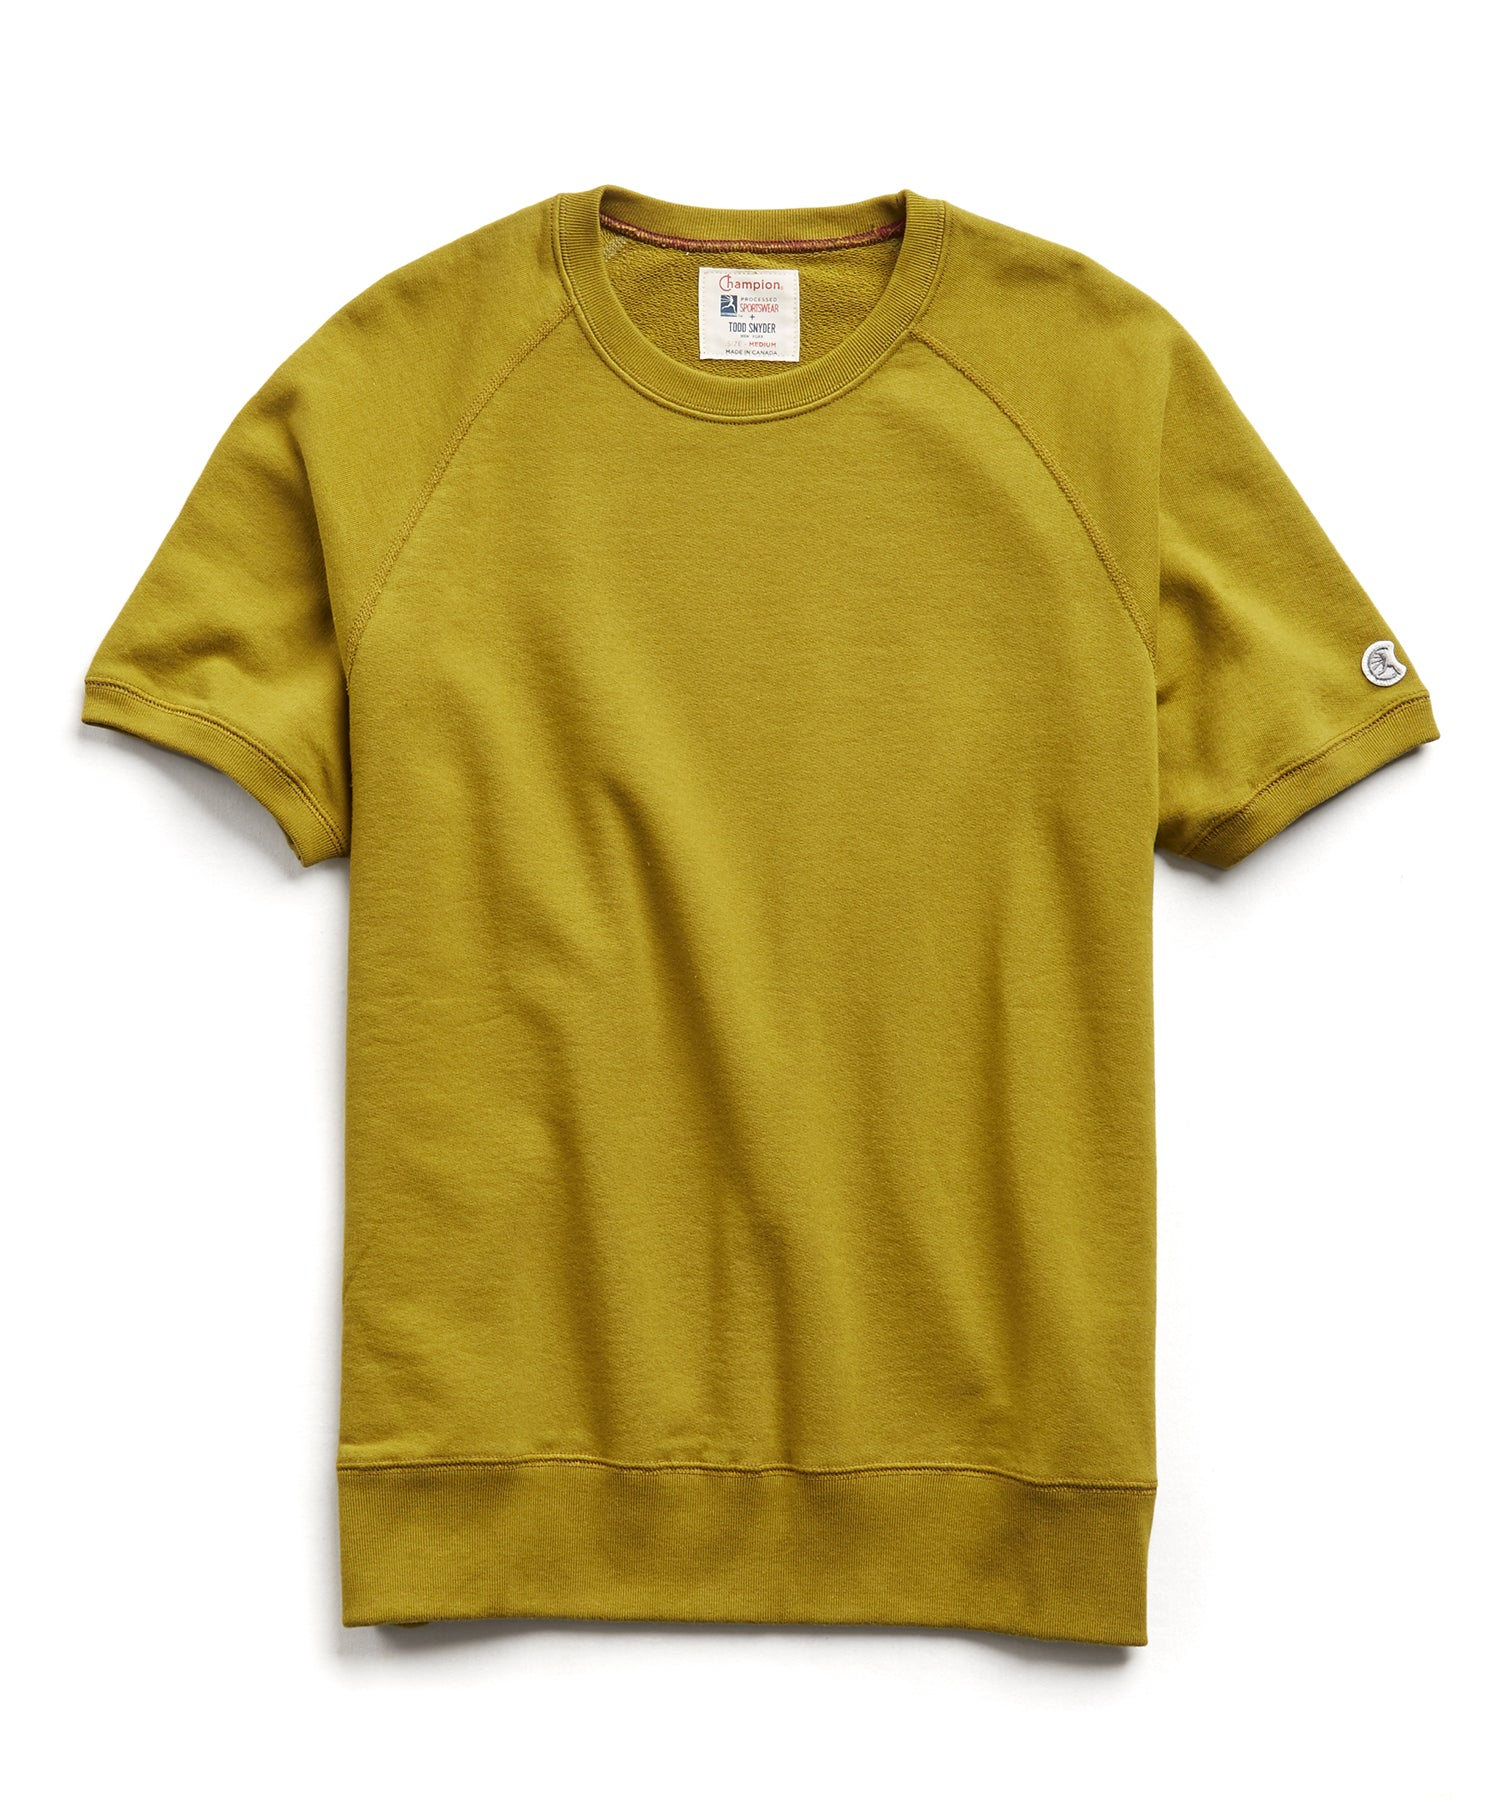 Terry Short Sleeve Sweatshirt in Lime Leaf